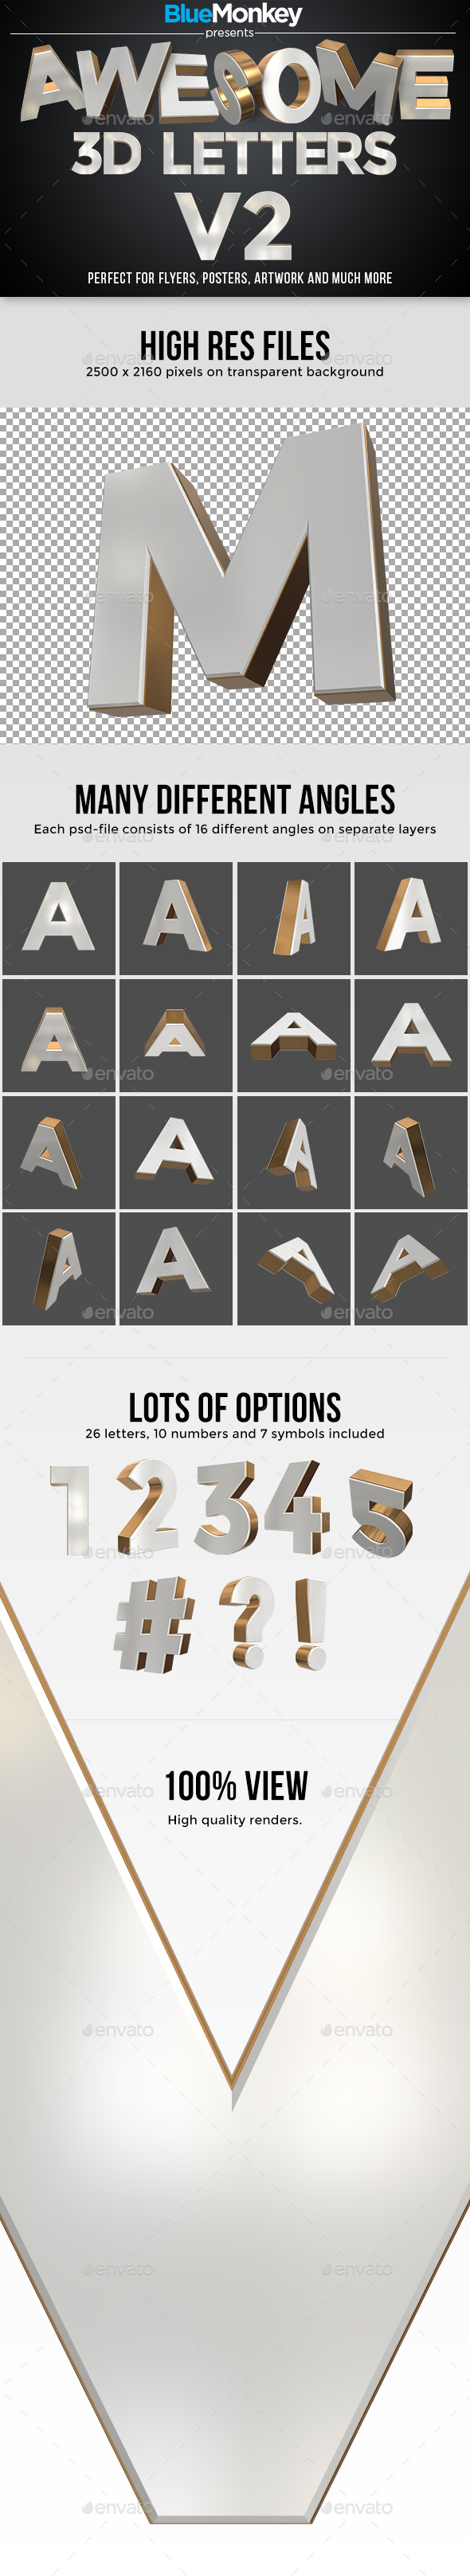 3D Letters Pack v2 - 3D Backgrounds